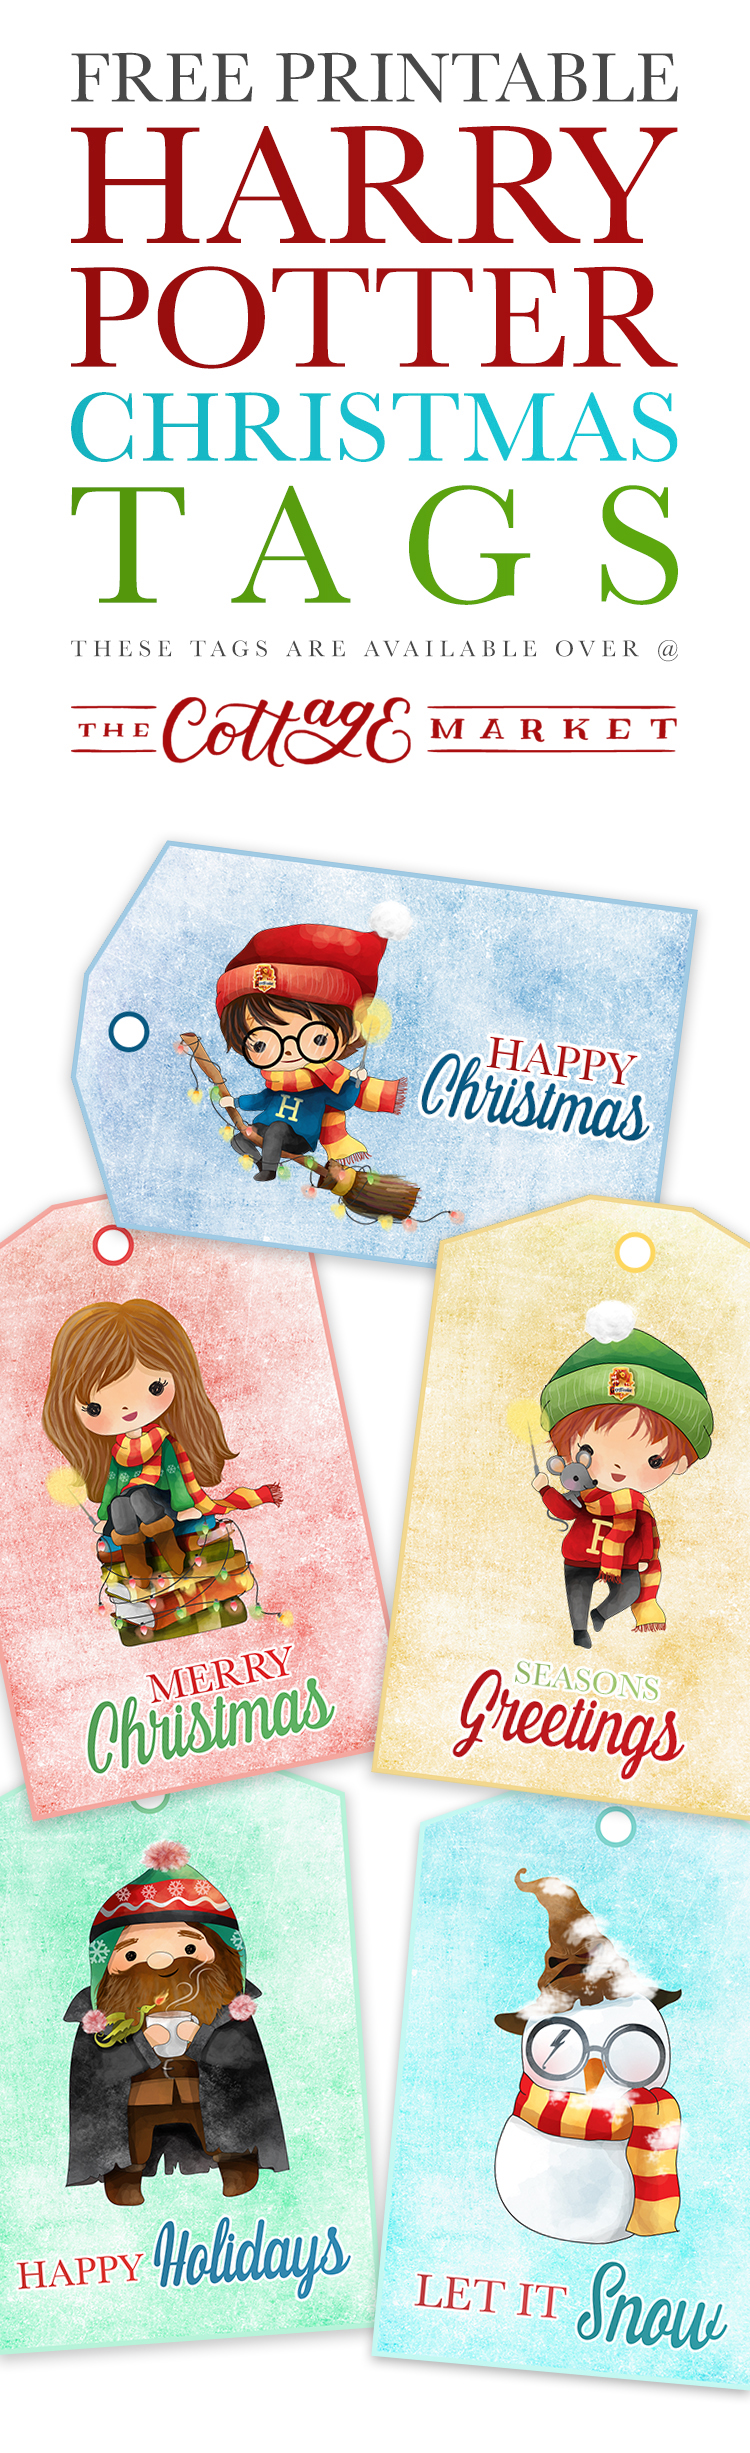 Free Printable Harry Potter Christmas Tags The Cottage